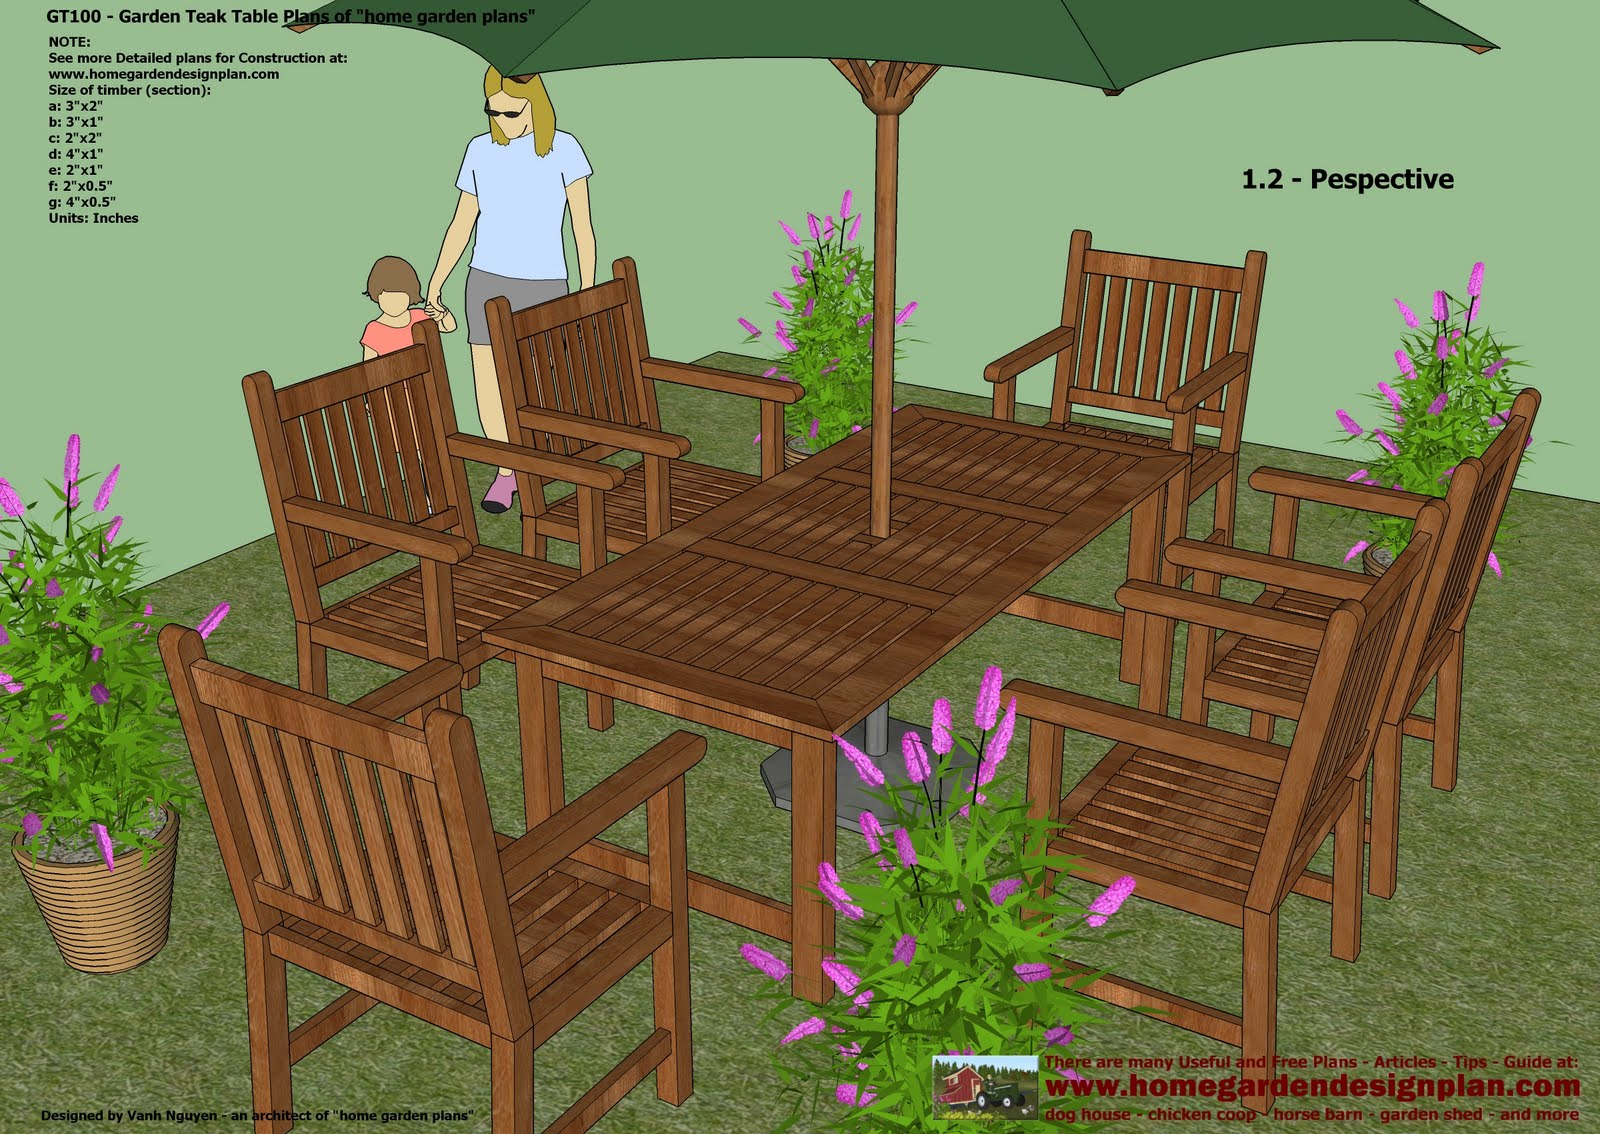 home garden plans: GT100 - Garden Teak Tables ...